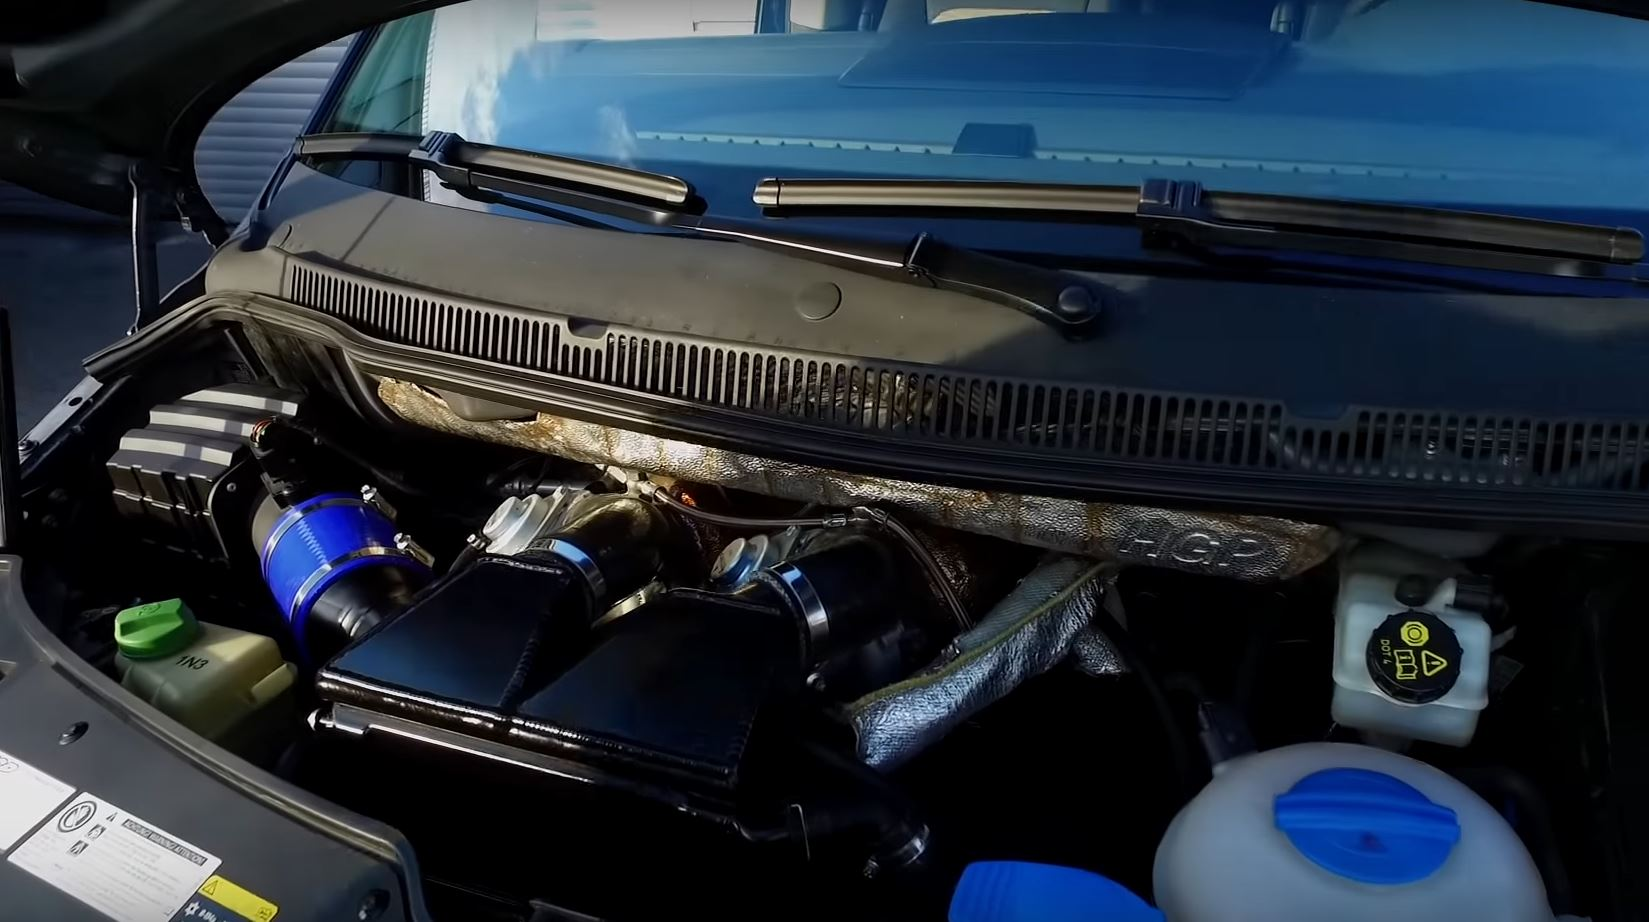 VW Transporter With 3 6 BiTurbo Swap Makes 700 HP, Costs